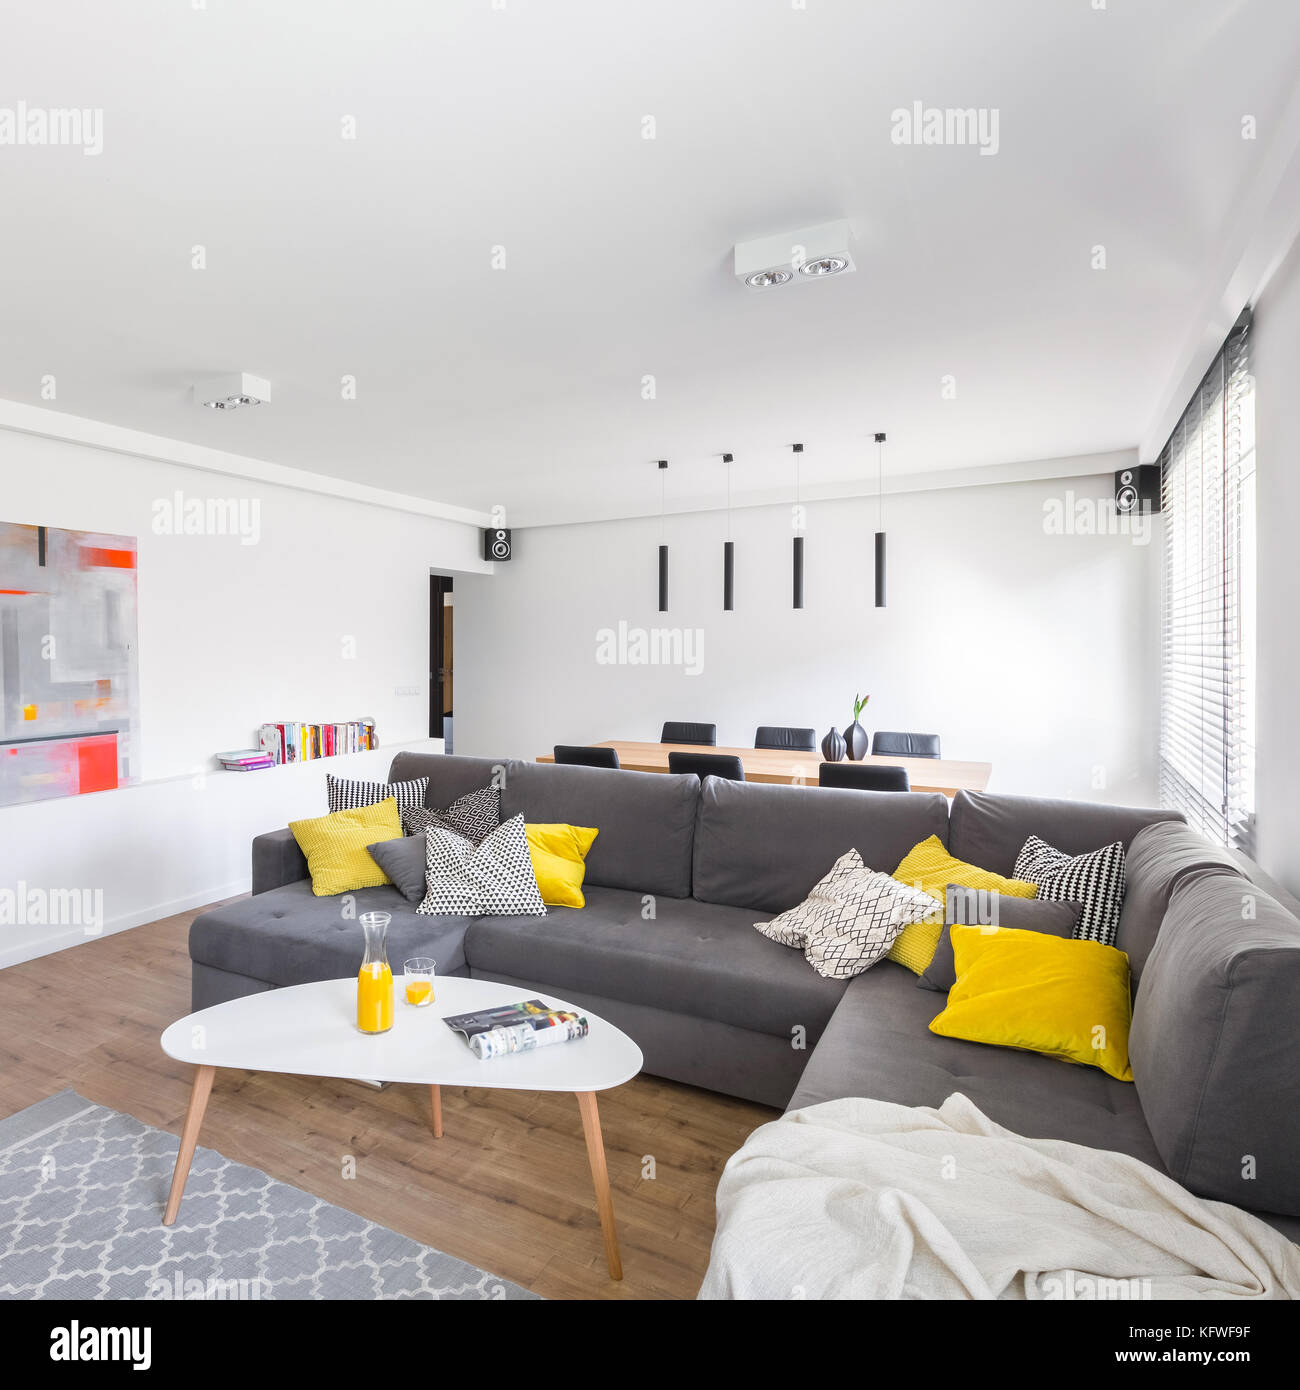 Modern White Living Room With Extra Large Gray Sofa And Stylish